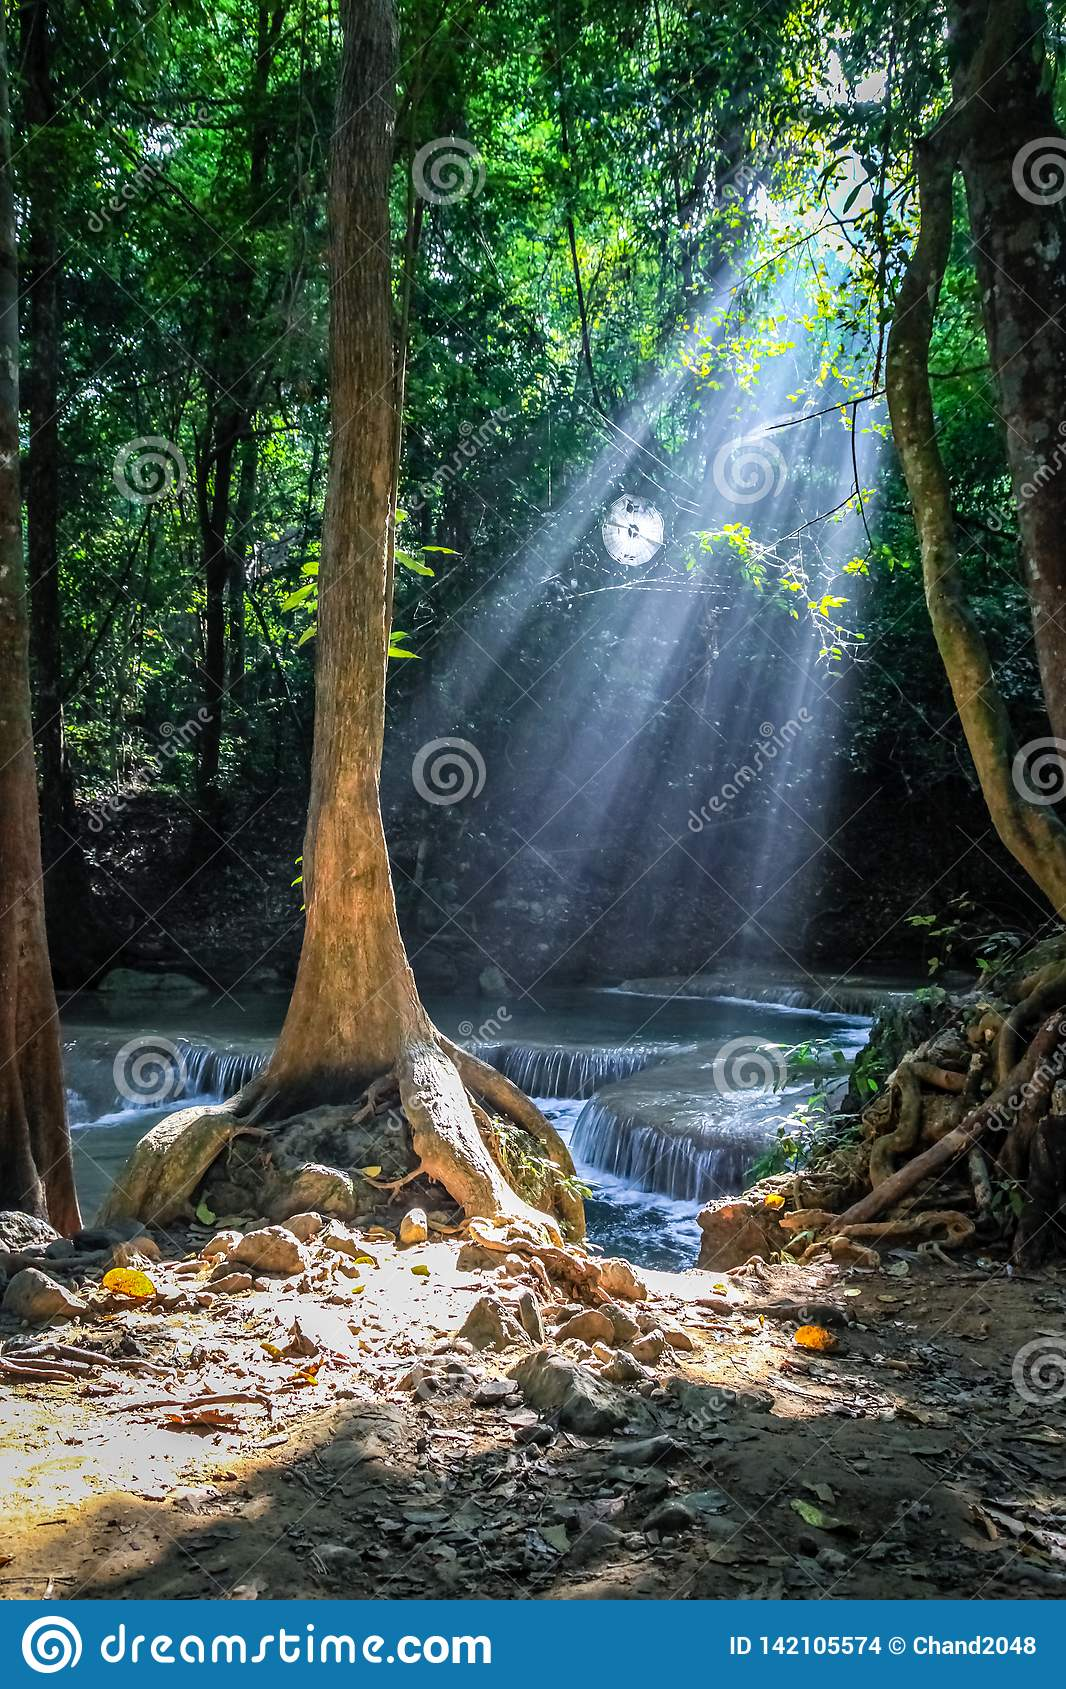 Sunlight streams through trees and a round spider web at Erawan national park with waterfalls in the background larger